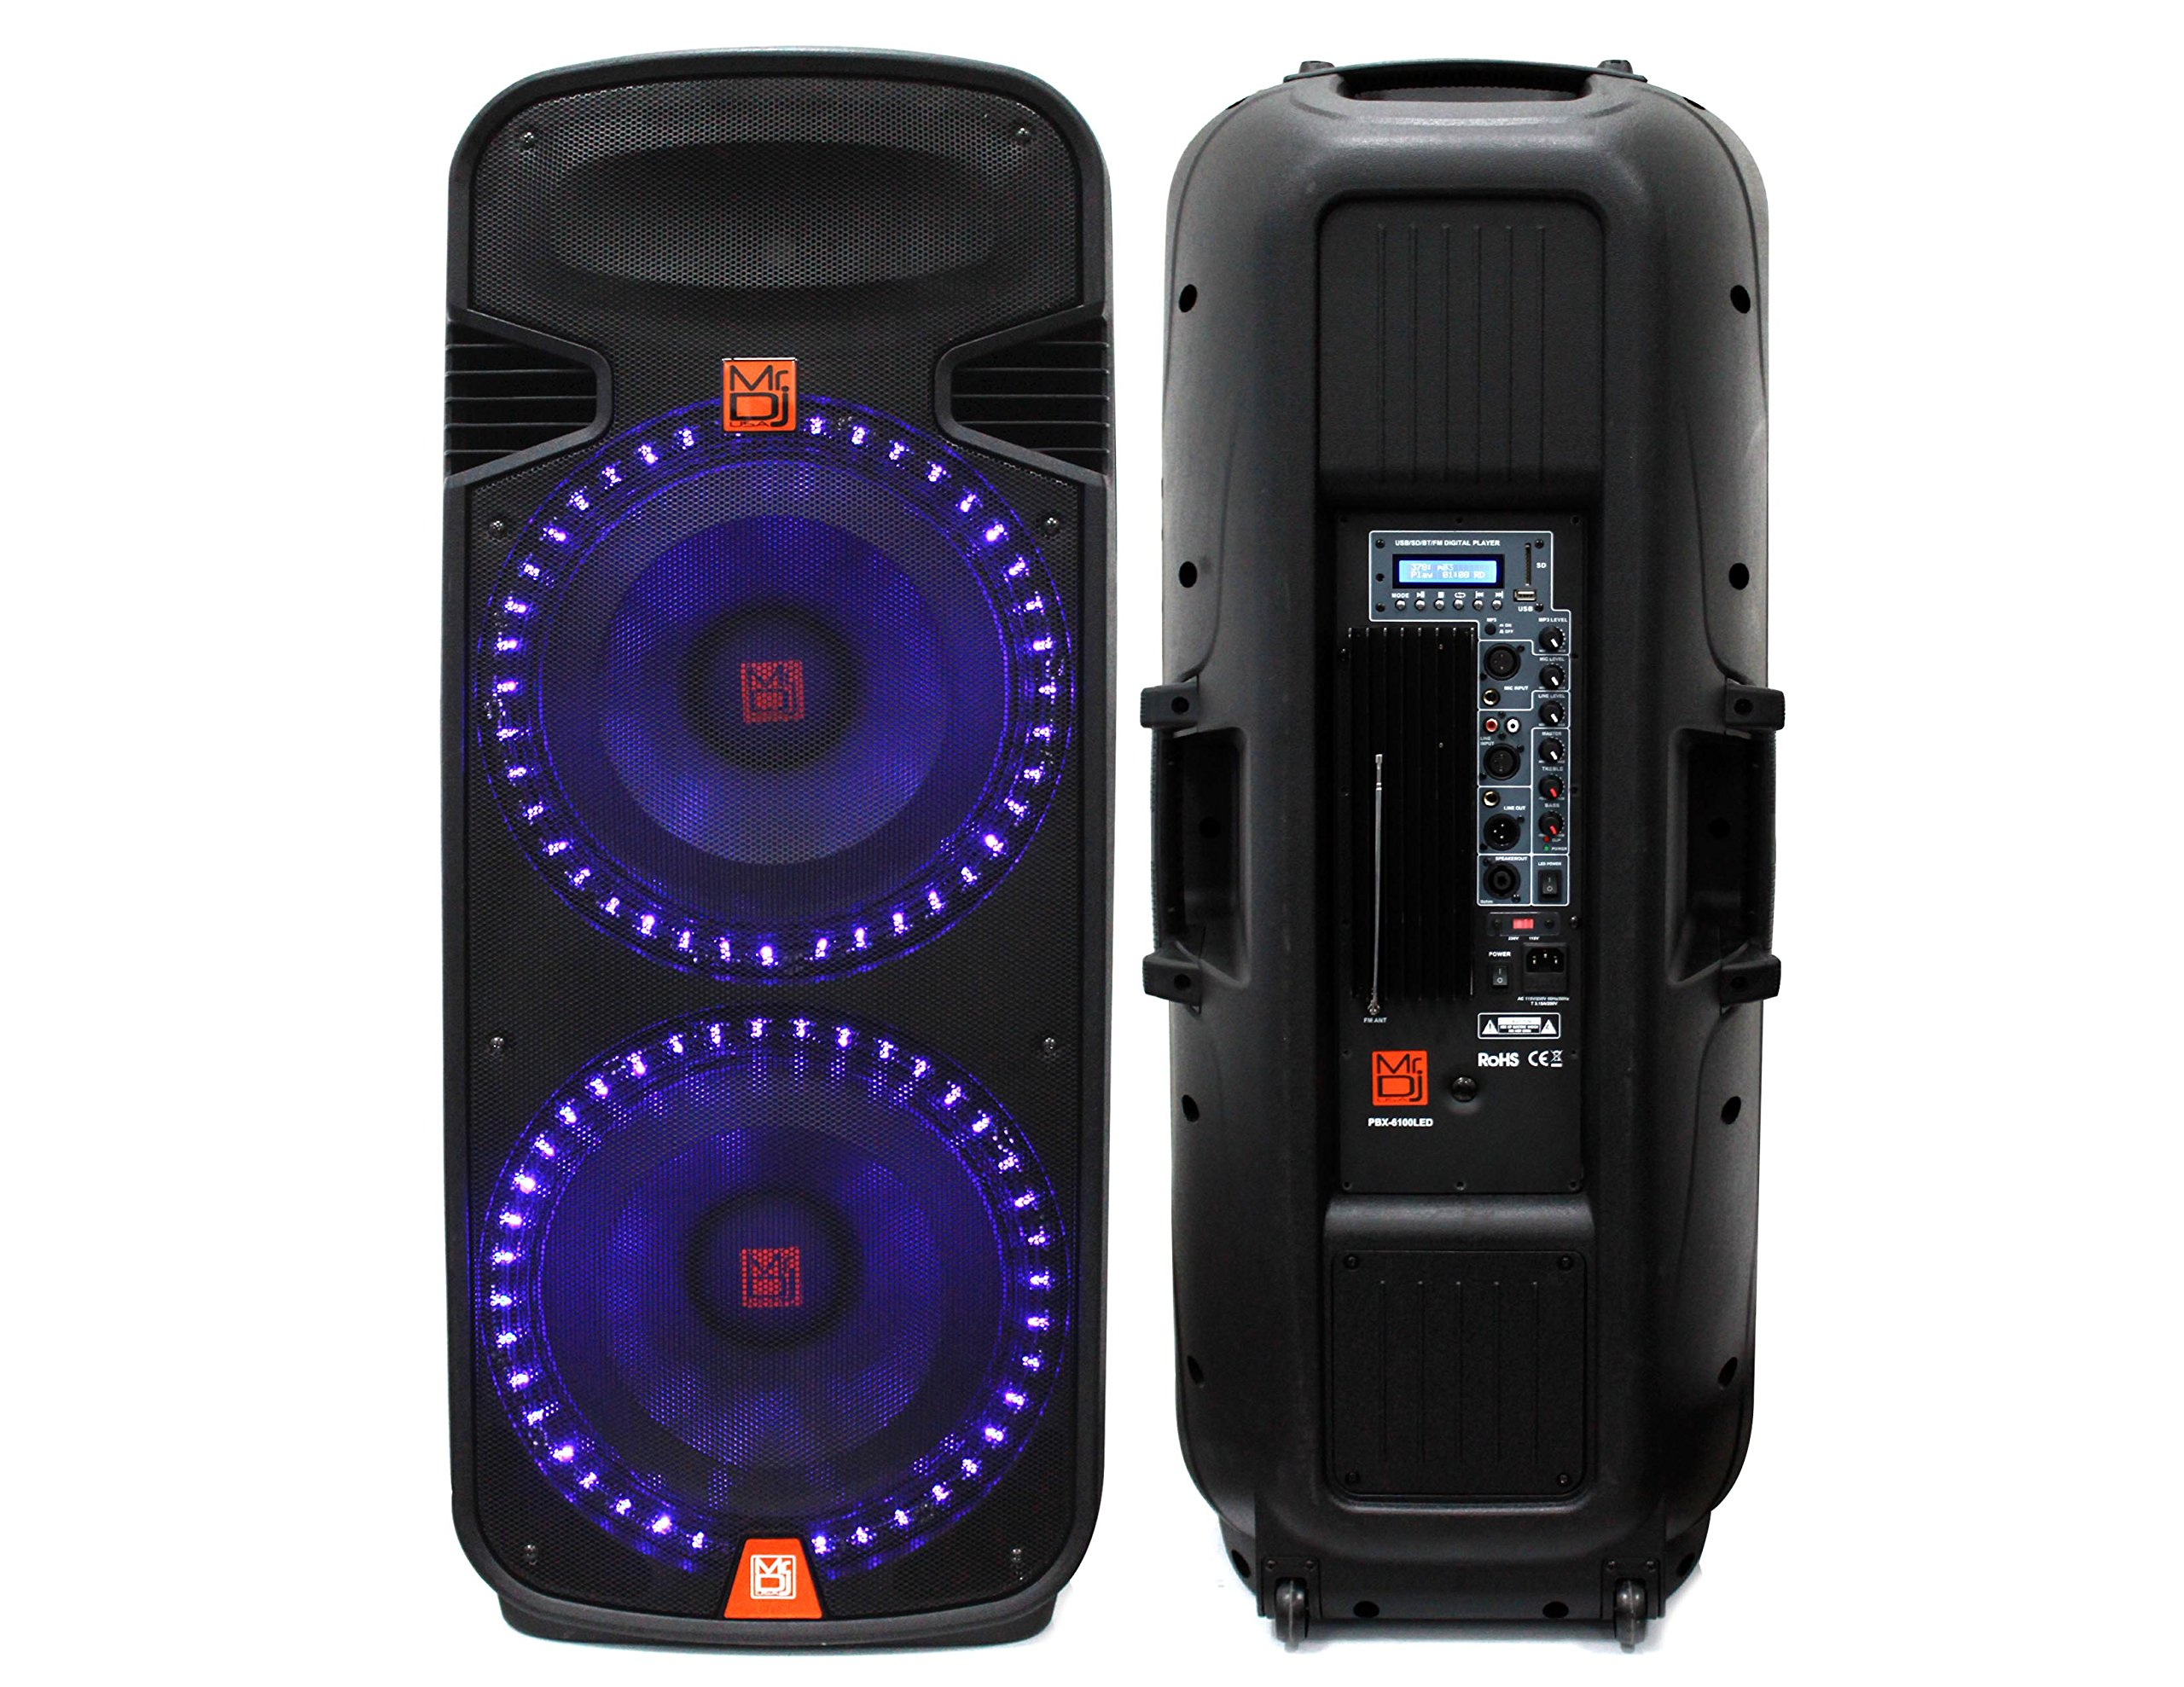 Mr. Dj PBX6100LED Dual 15-Inch 3-Way Portable Speaker with Built-In LED Light, Bluetooth, USB and FM Radio